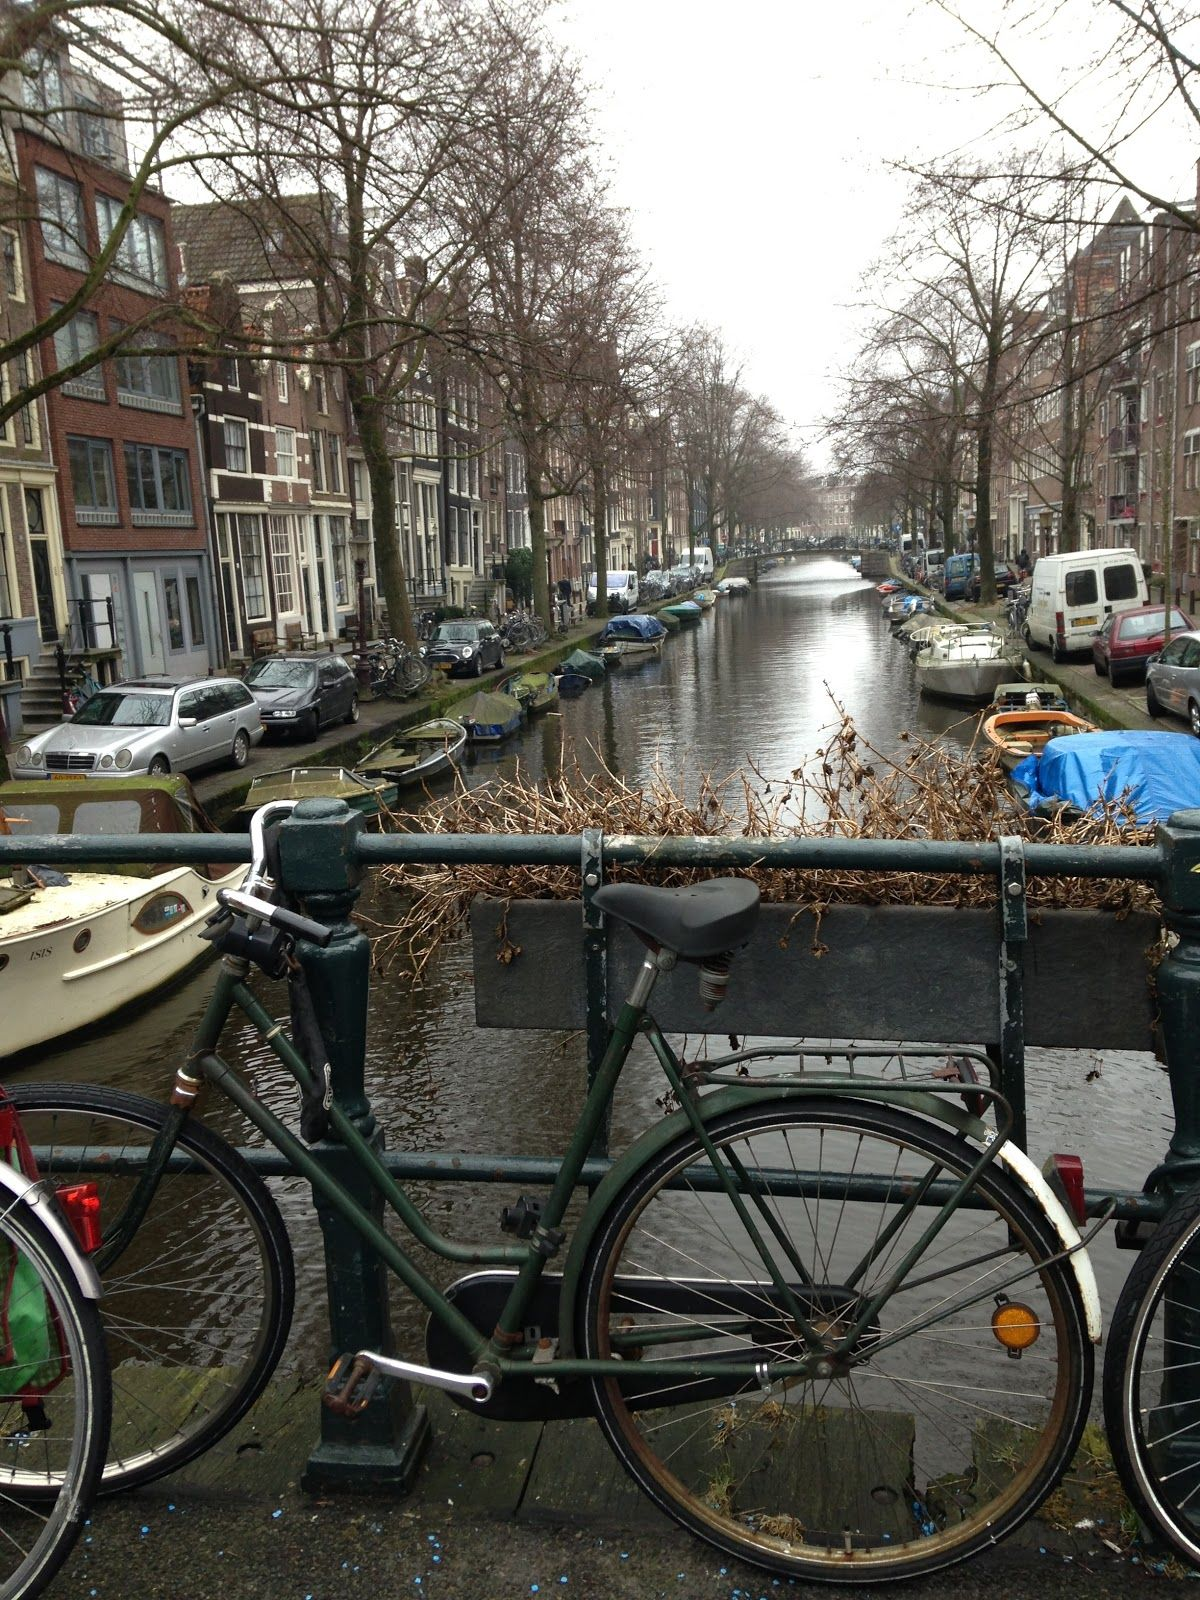 Amsterdam! Redcherryrodekers, A blog about what makes life more beautiful!